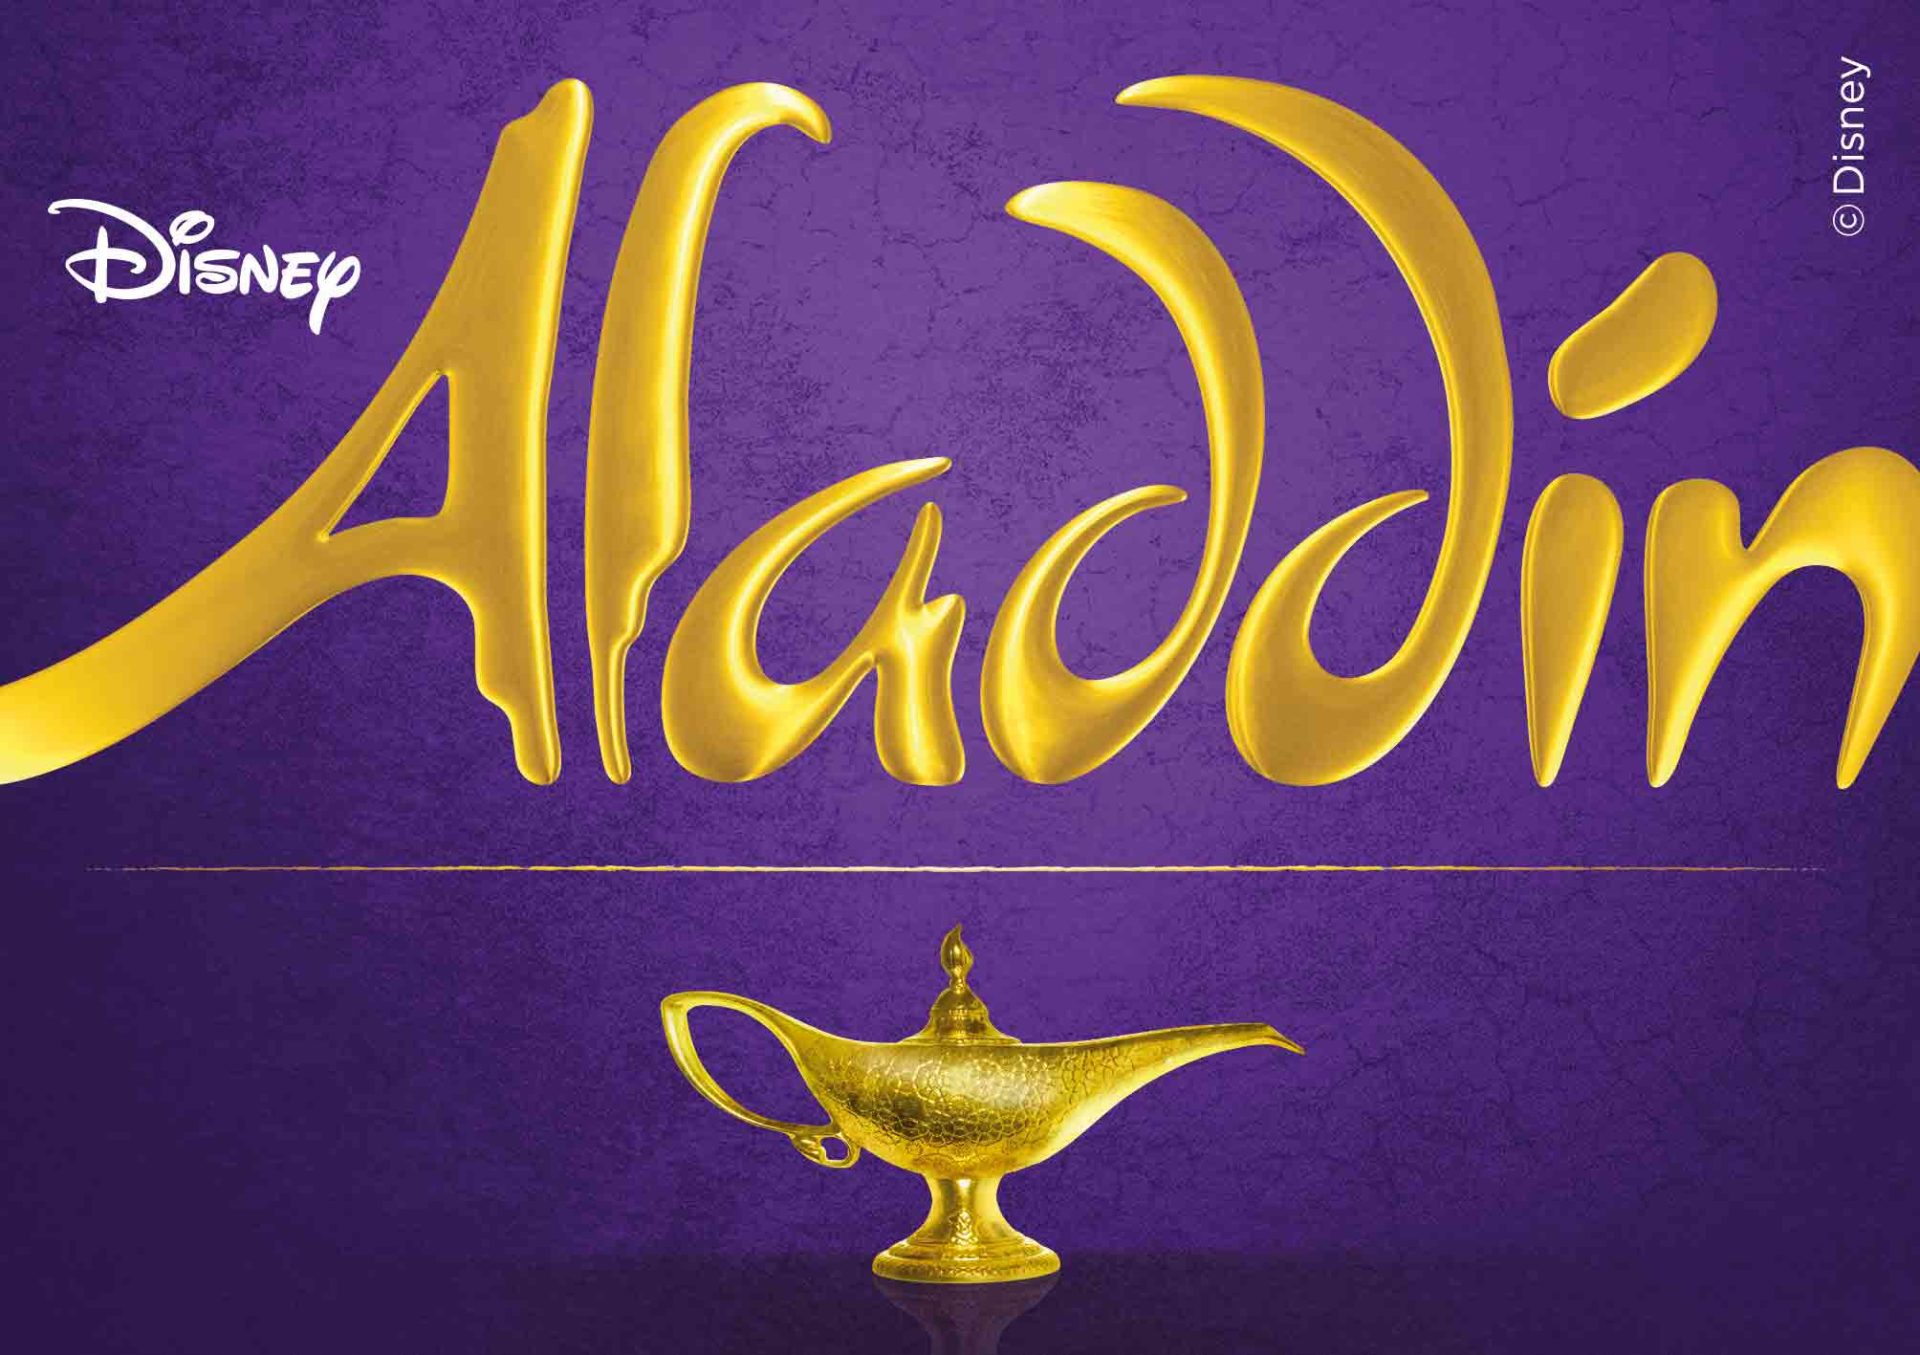 Disneys Aladdin - copyright: Stage Entertainment